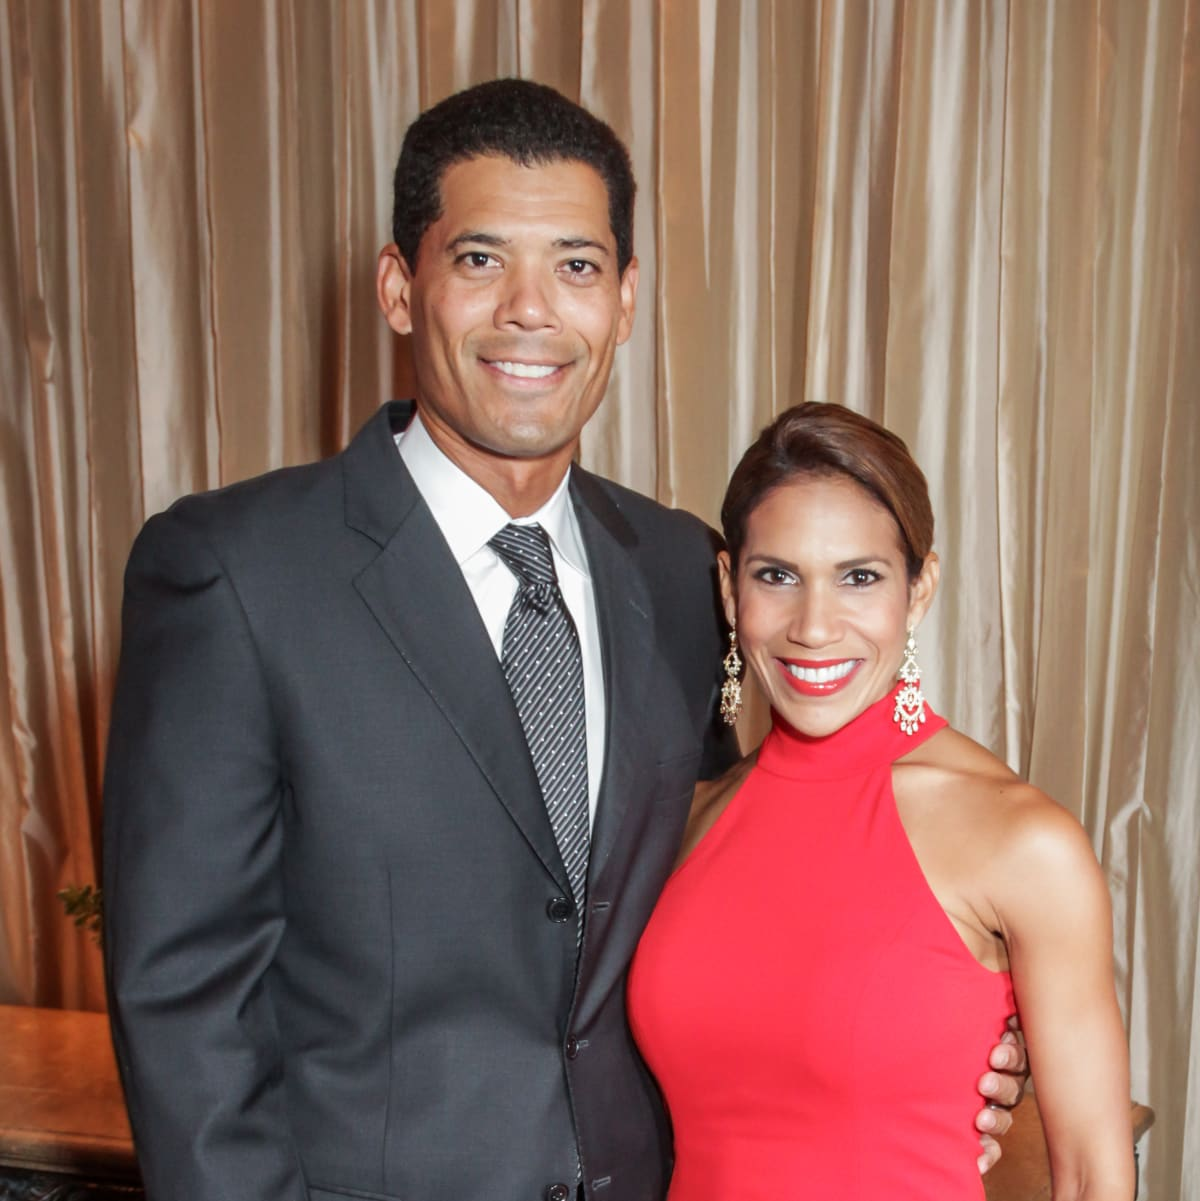 Hearts of Gold Gala Dr. Wayne Franklin and Mistress of Ceremonies Rachel McNeill